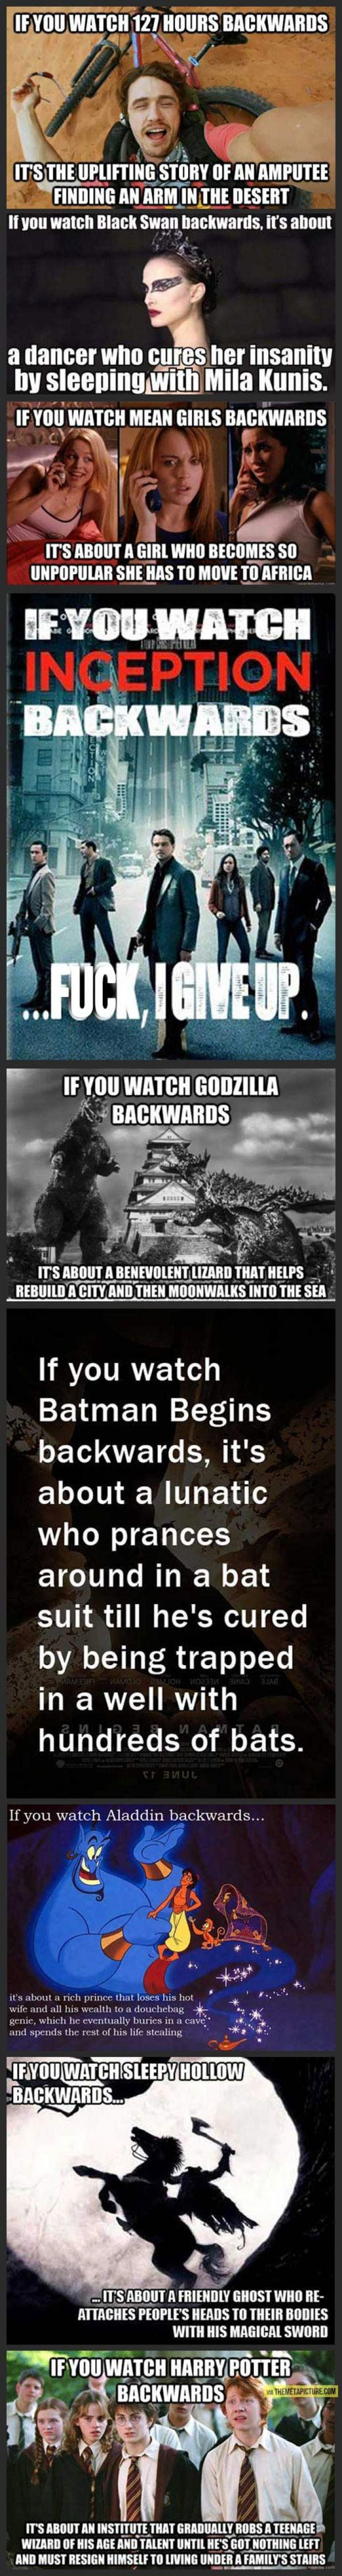 If You Watch These 9 Movies Backwards...